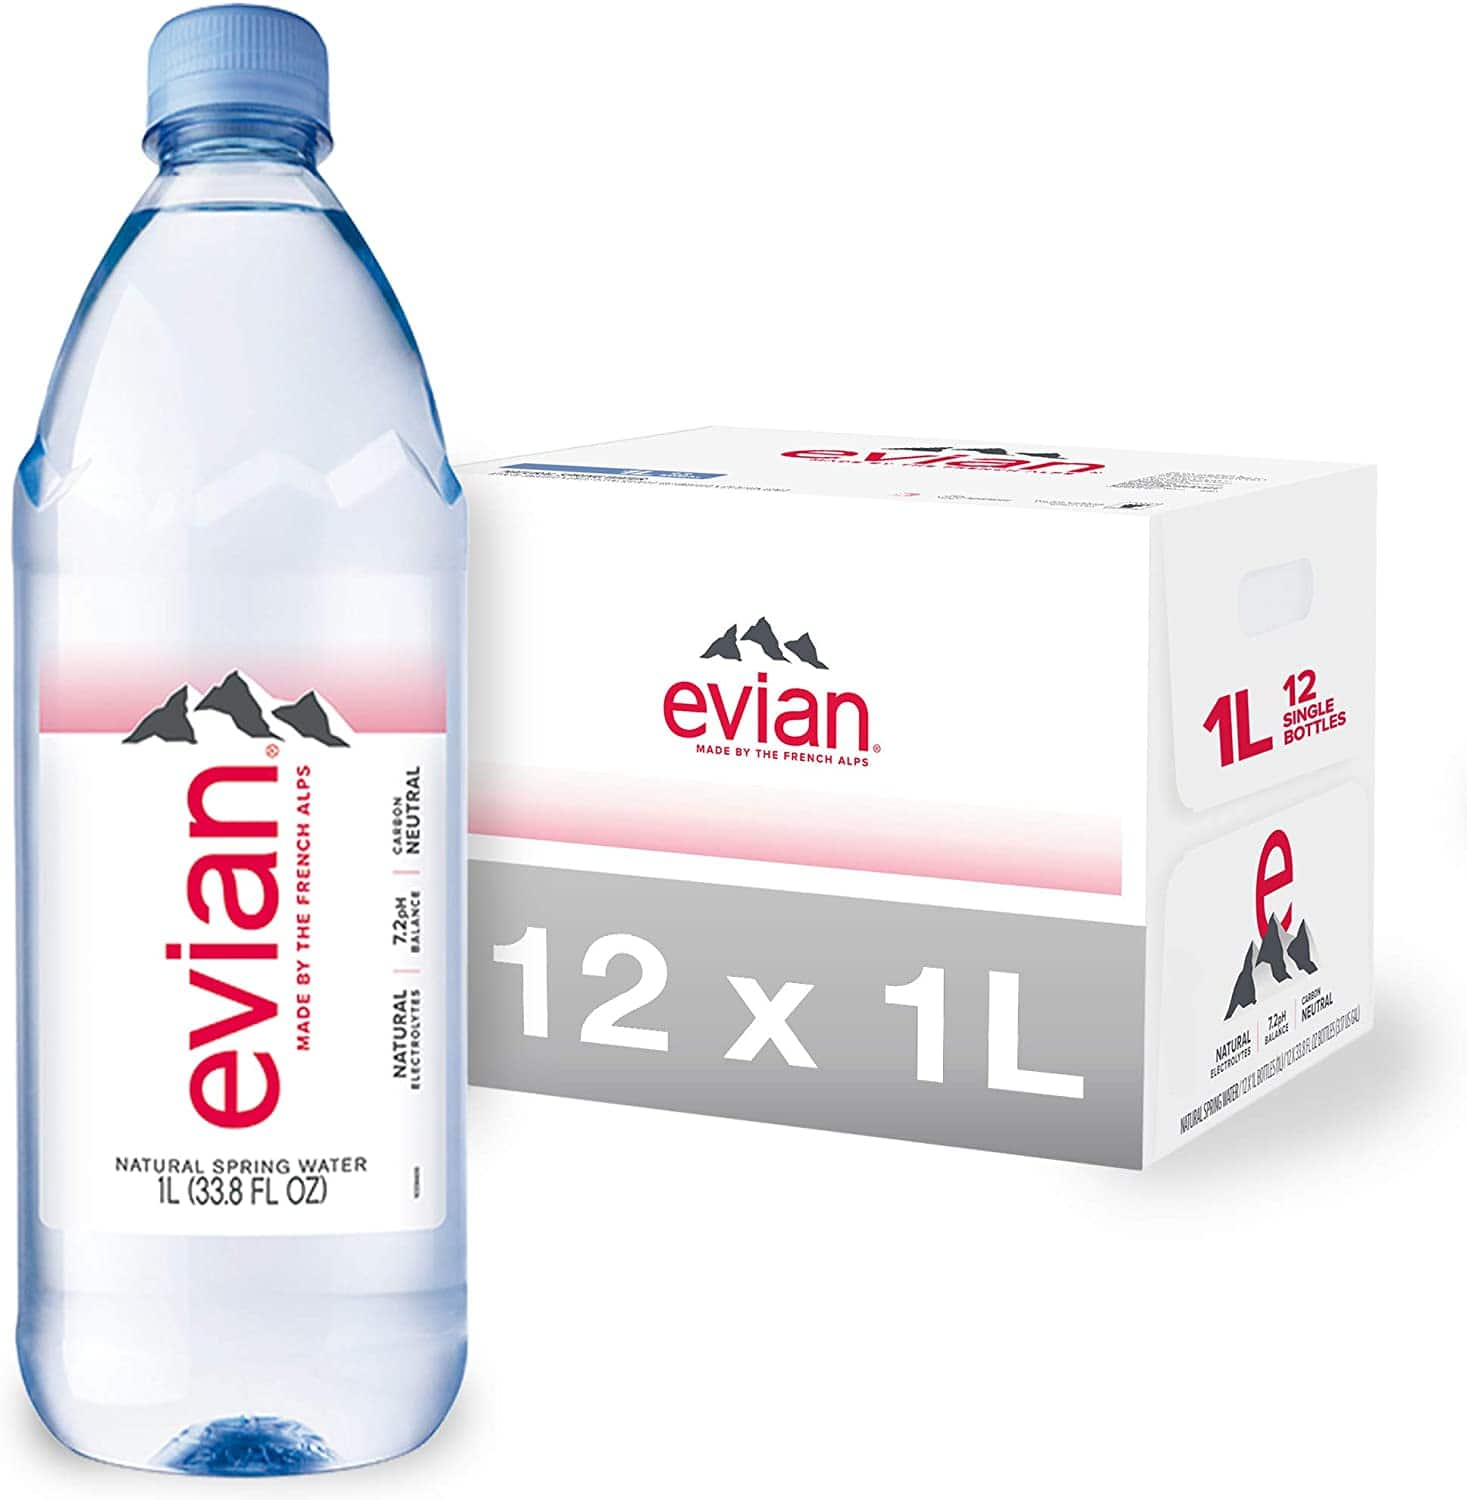 evian 12 pack 1 liter bottles 15.98 but 11.15 after clipping 25% coupon for subscribe and save $11.15